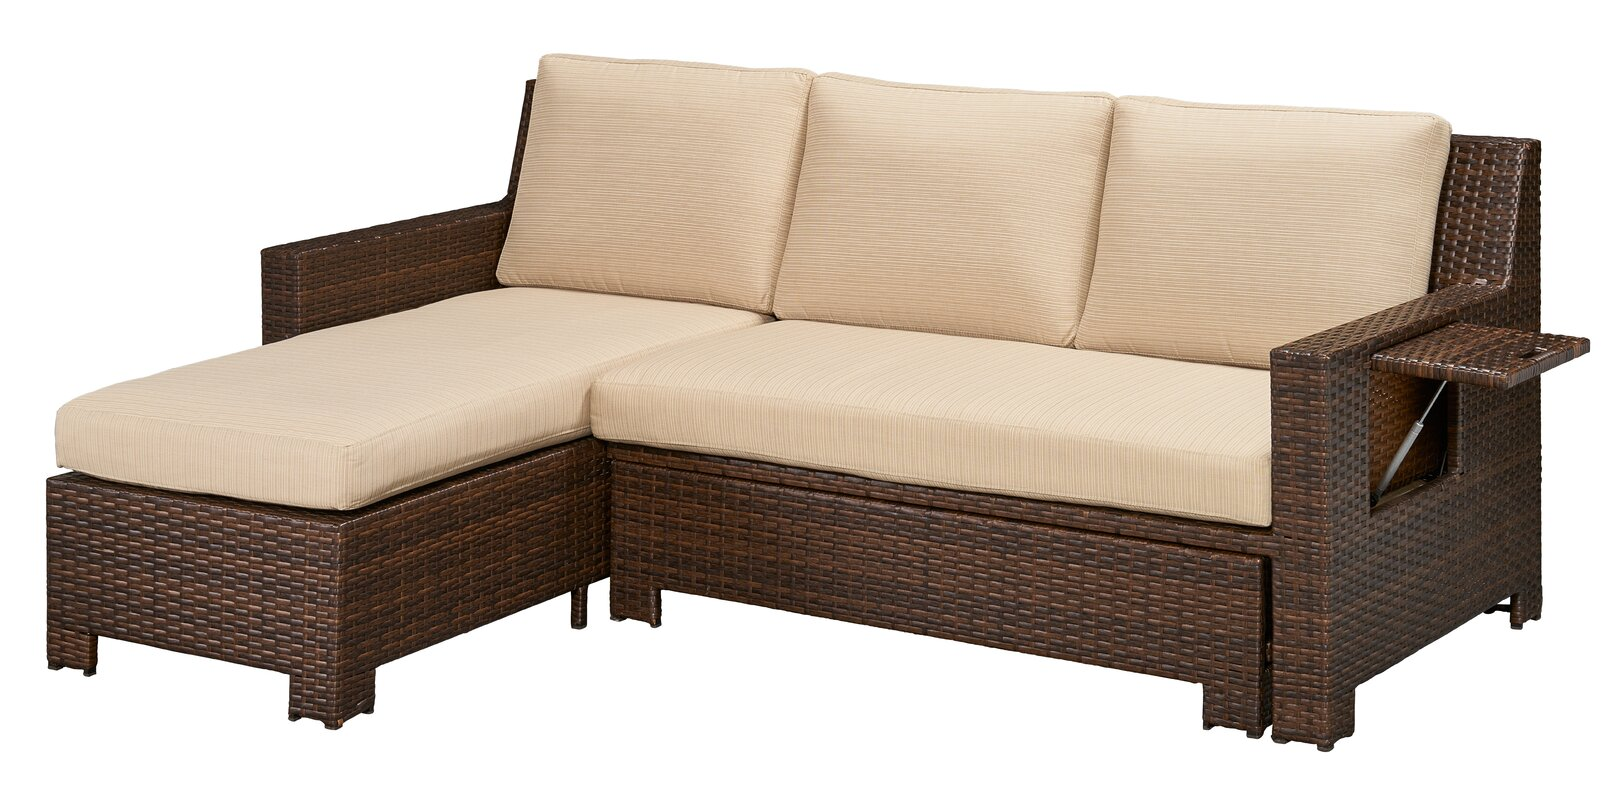 Darby Home Co Ferndale Deck Convertible Sectional Sofa with